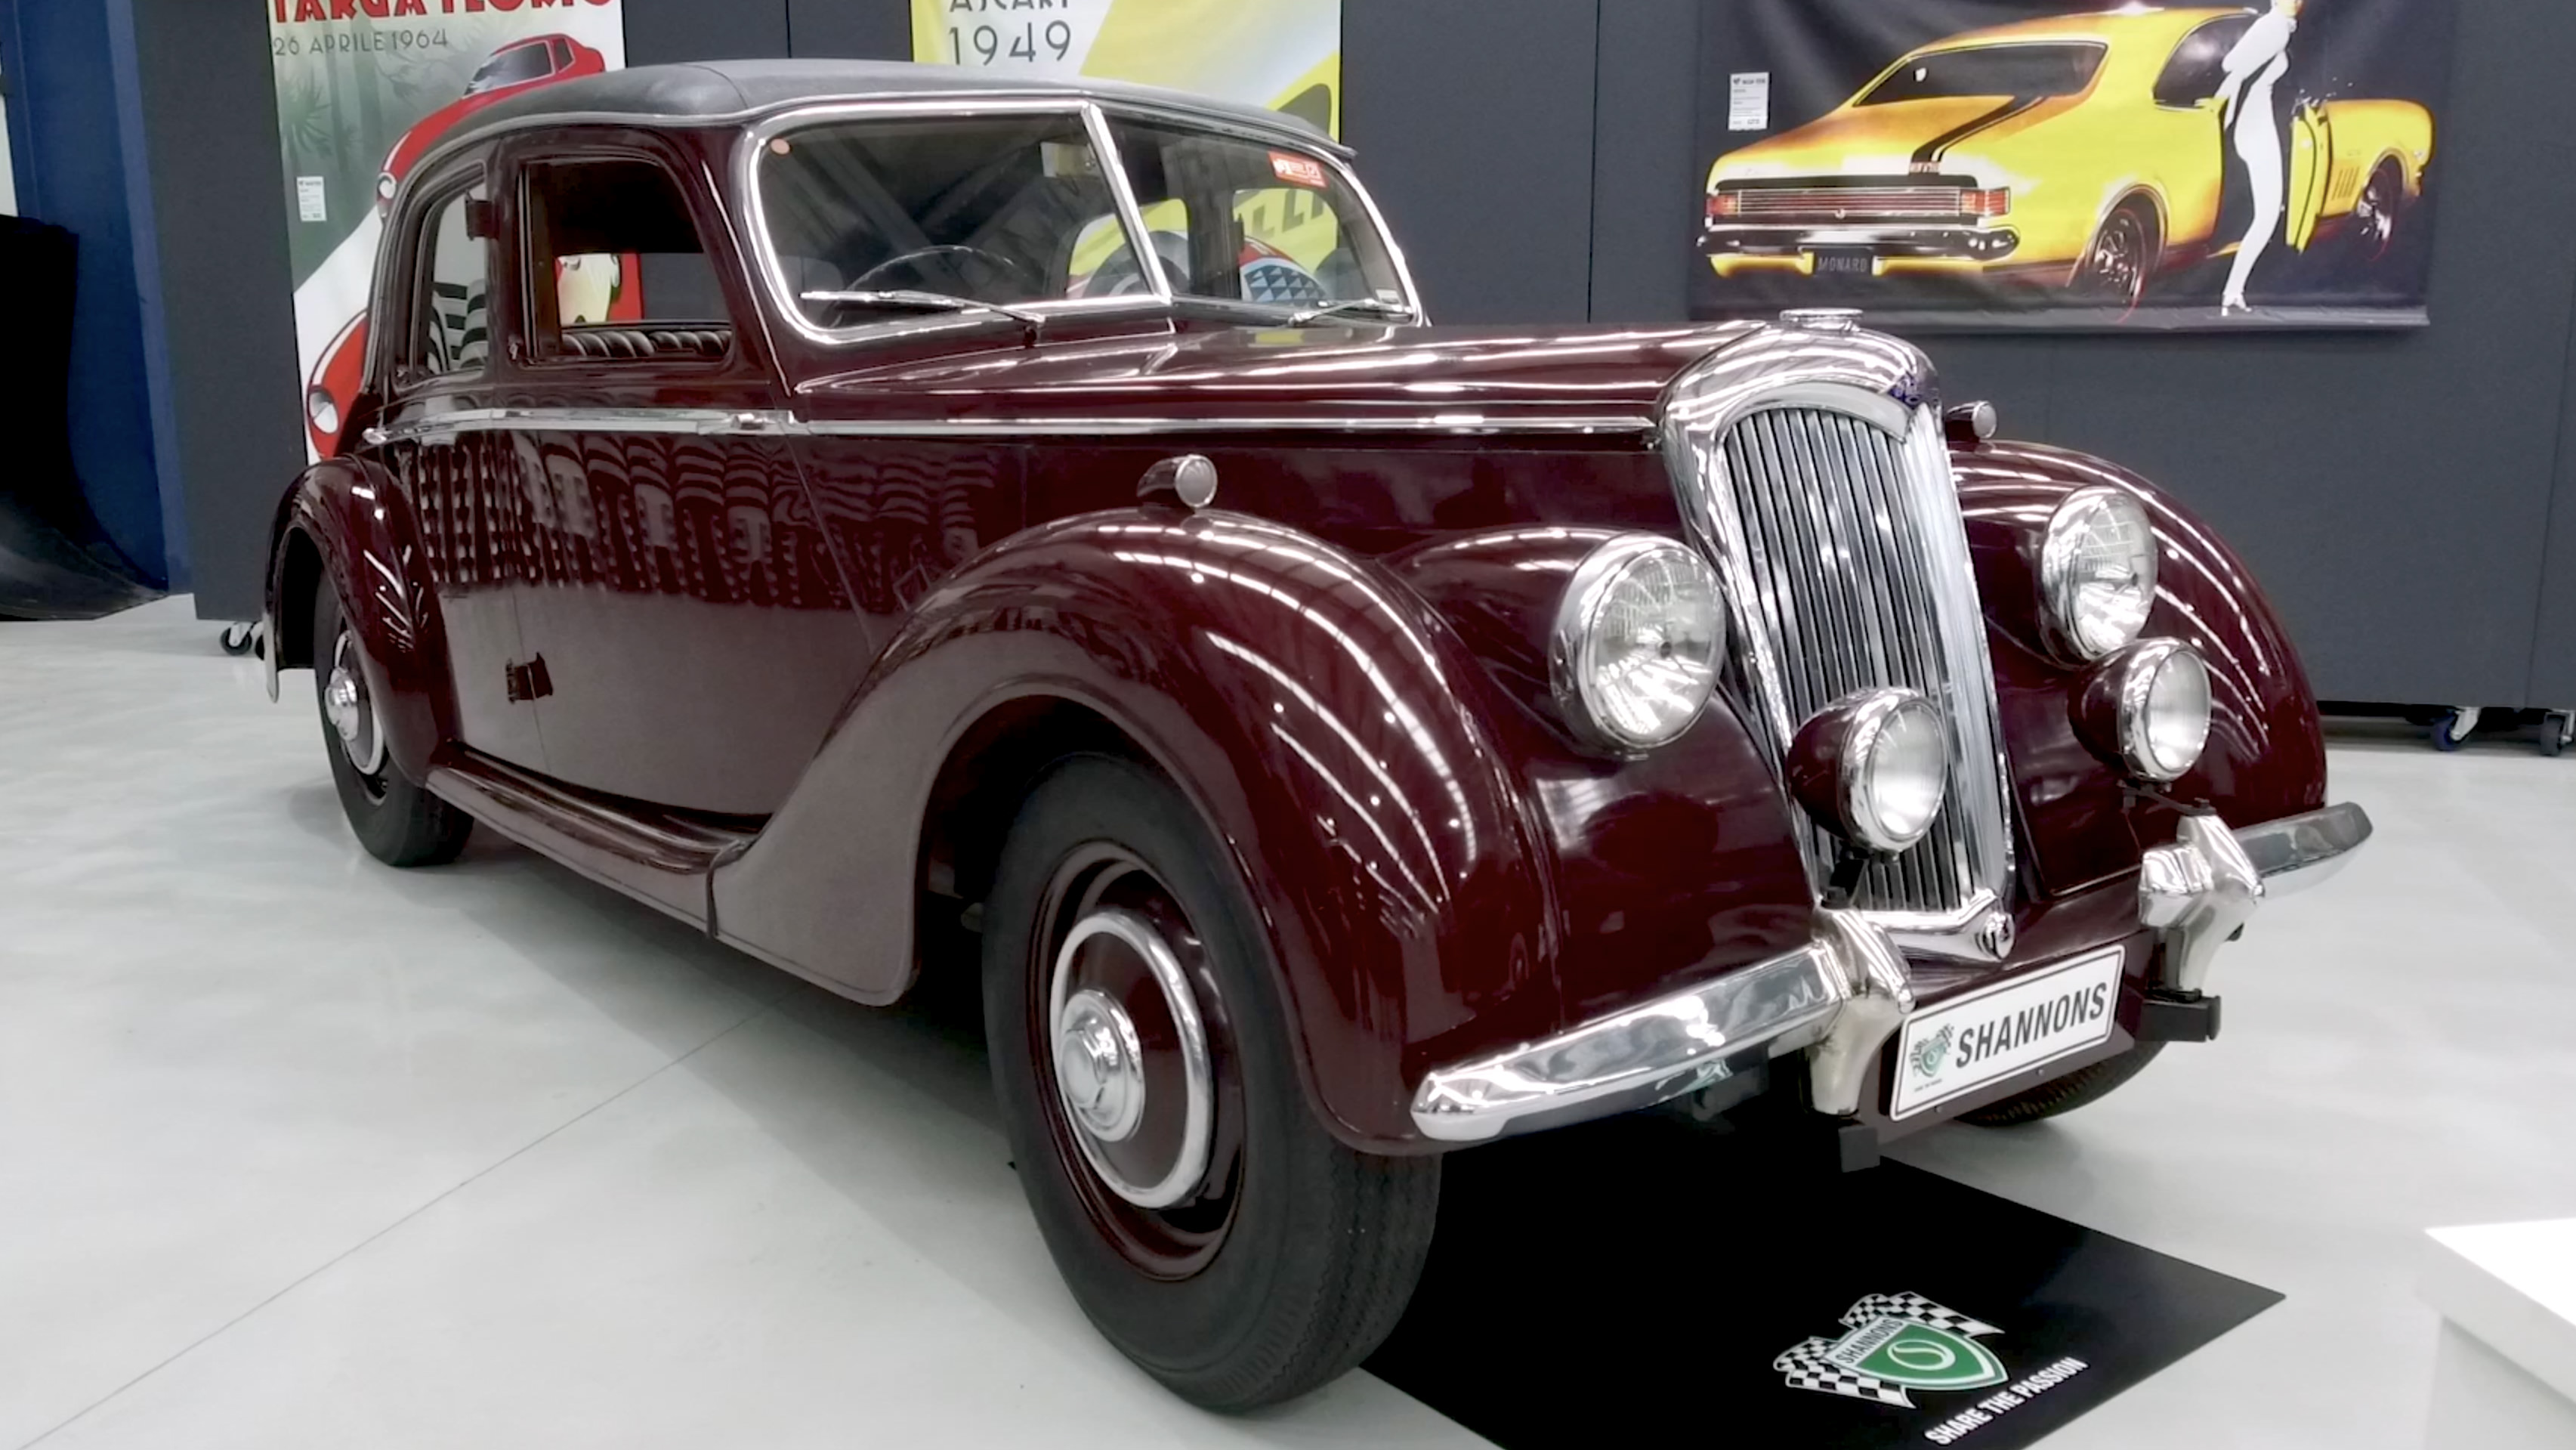 1950 Riley RMA 1.5Lt Saloon - 2020 Shannons Spring Timed Online Auction